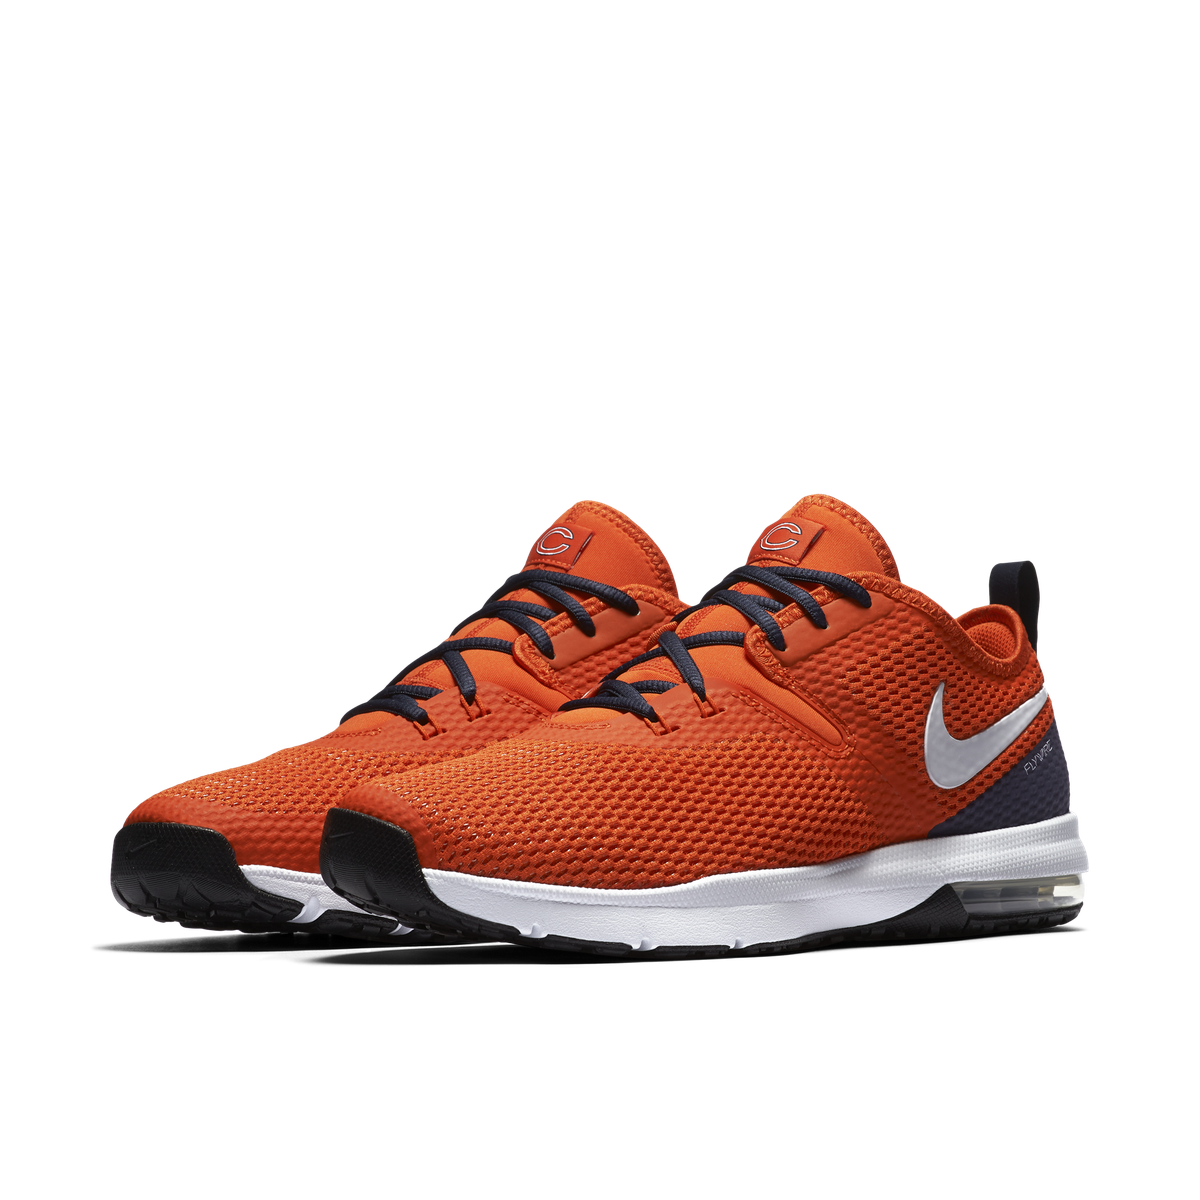 3520da04702bc7 Nike releases new NFL-themed Air Max Typha 2 shoe collection ...